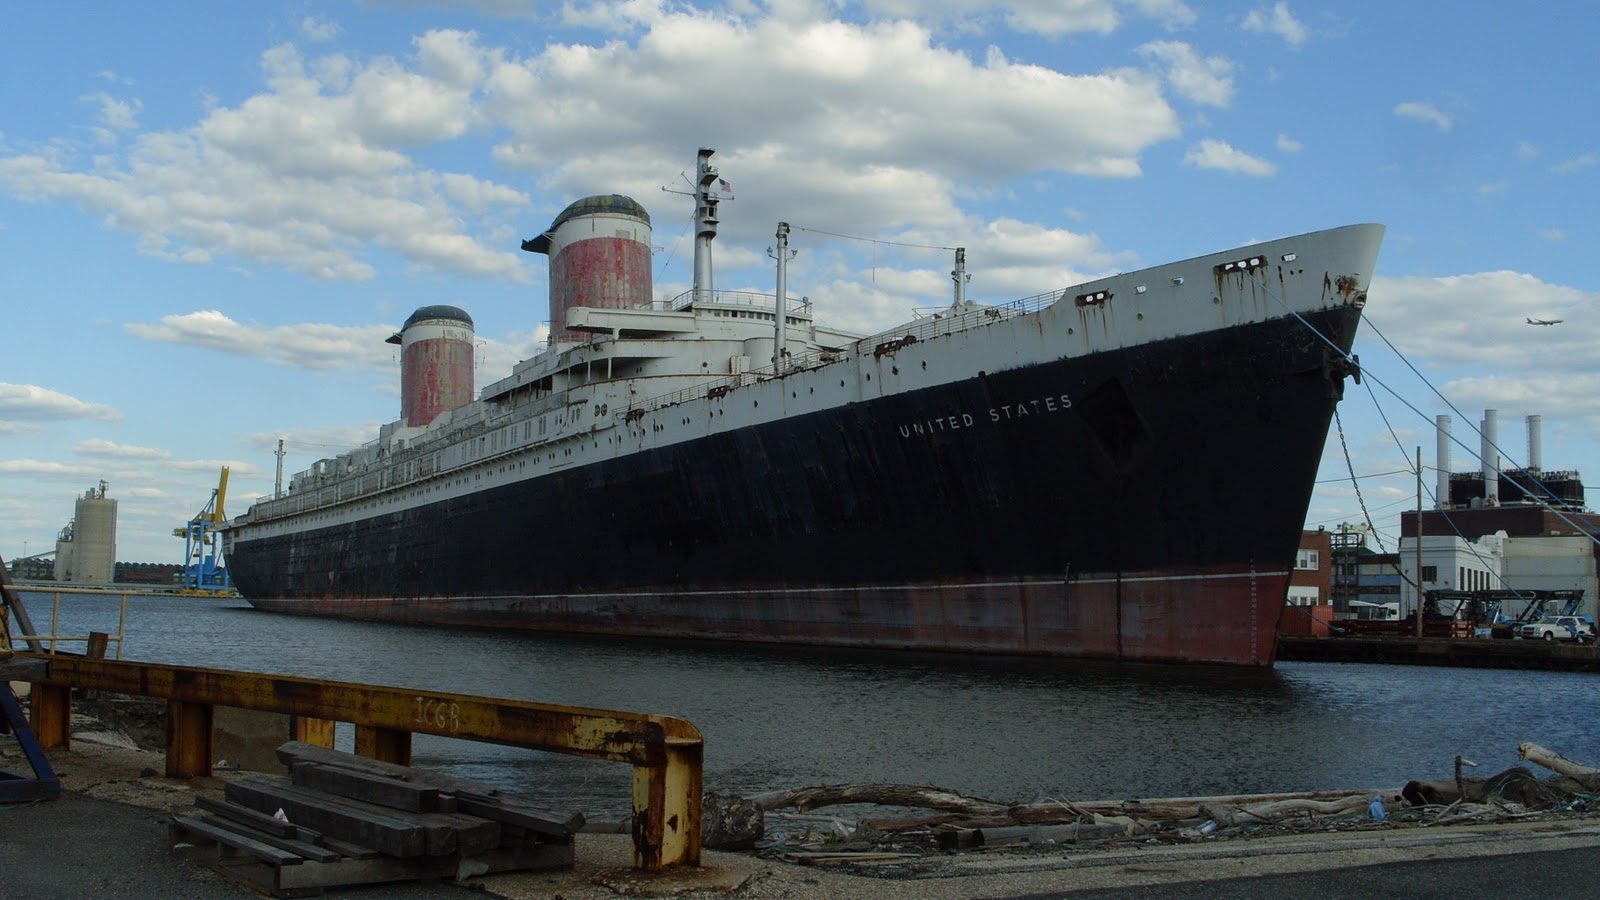 Ss united states - the liner and manhattan